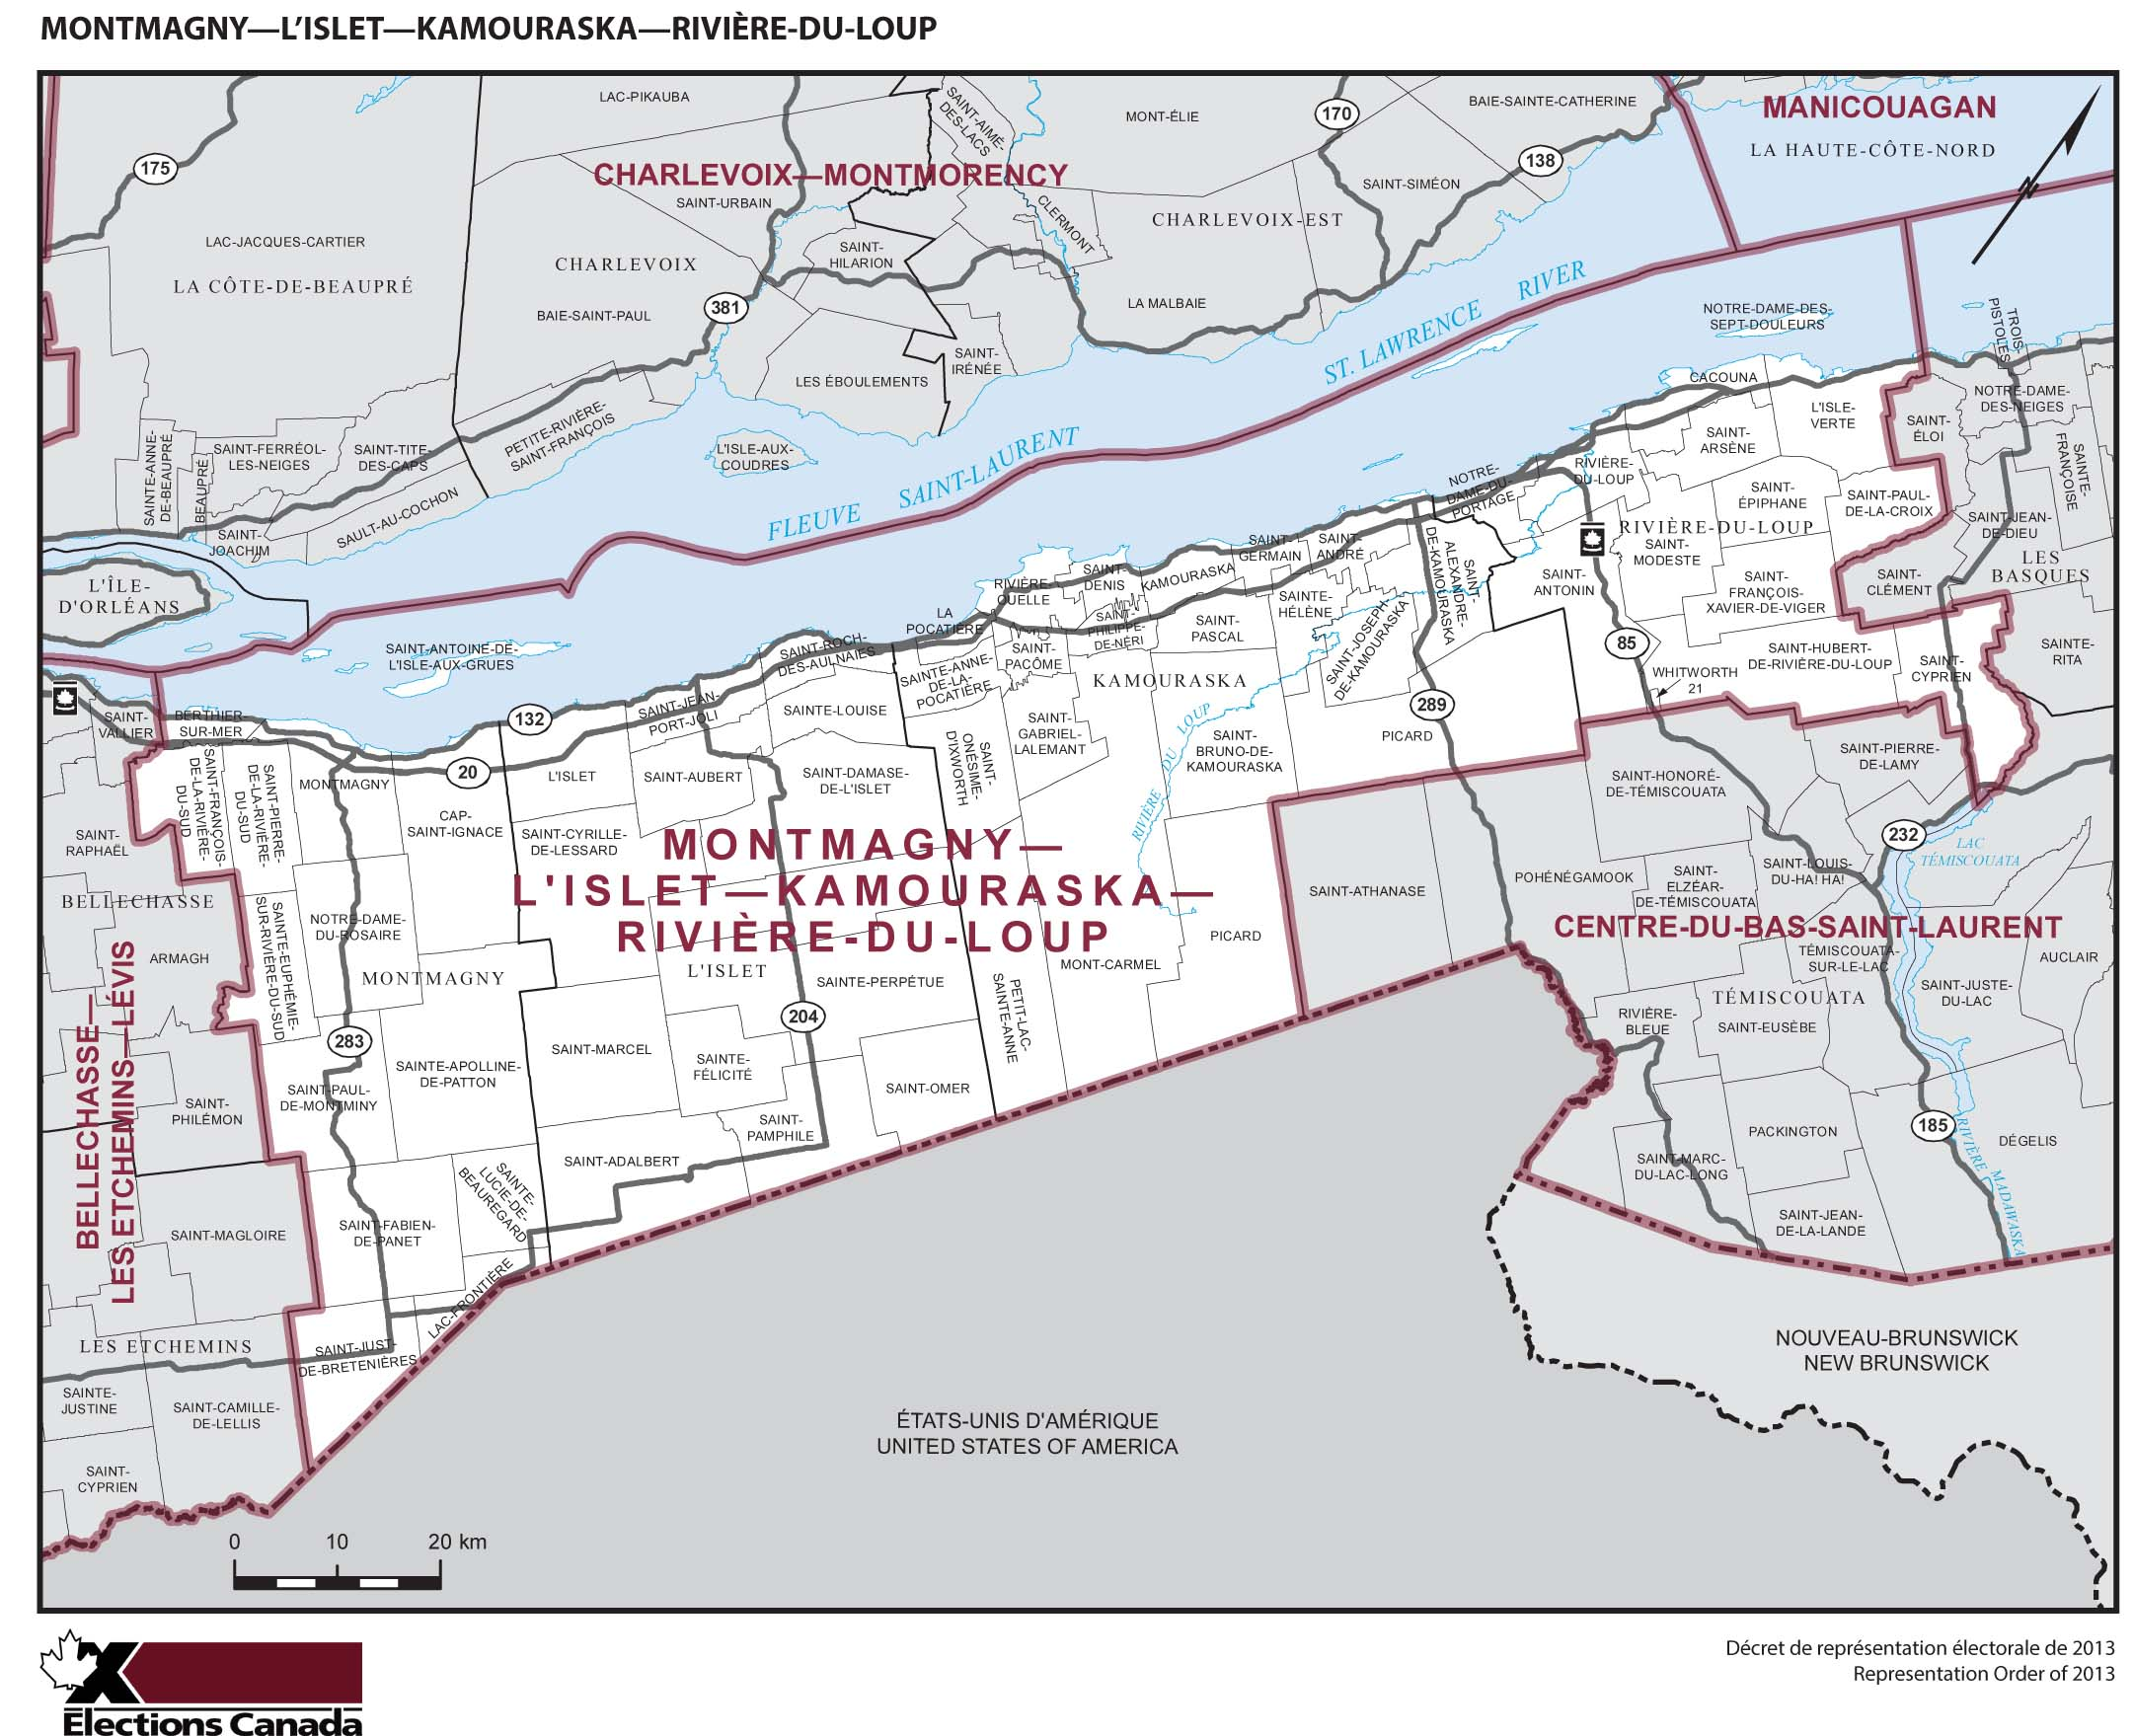 Map: Montmagny--L'Islet--Kamouraska--Rivière-du-Loup, Federal electoral district, 2013 Representation Order (in white), Quebec